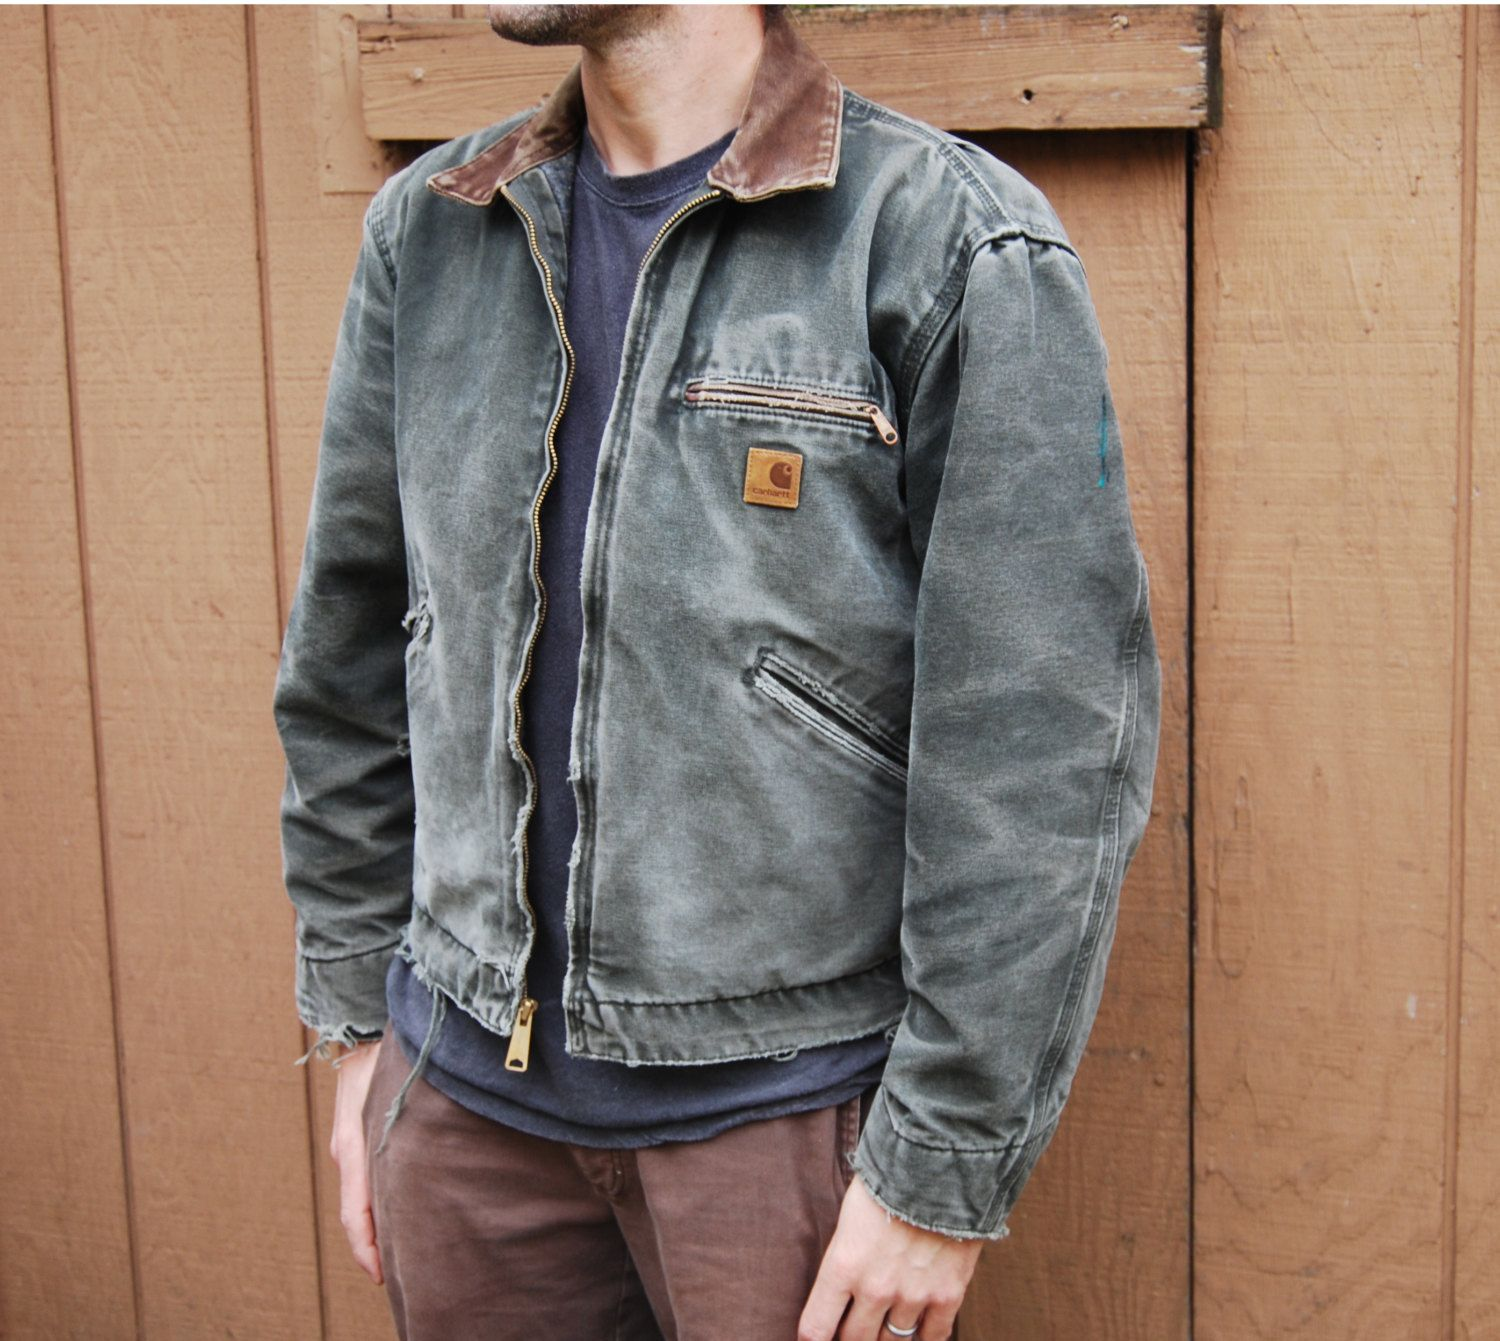 c11708d66b Vintage Carhartt Detroit Jacket - Olive Green Heavy Cotton Duck Distressed  and Worn, Men's S to M